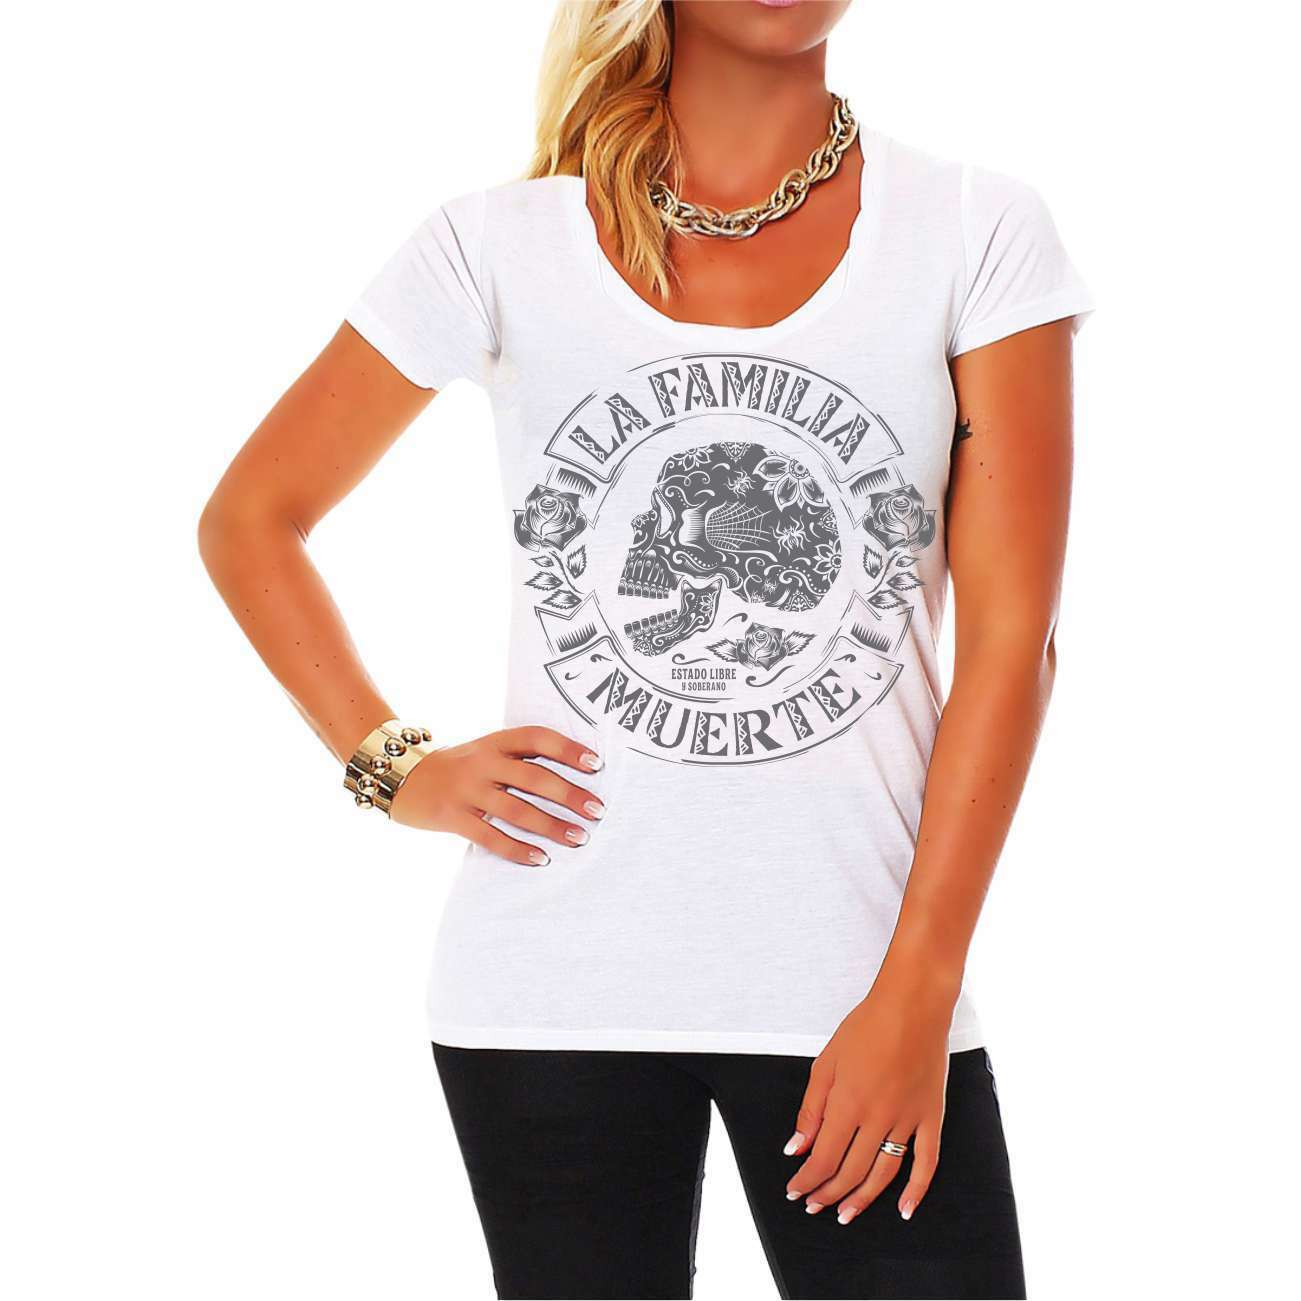 Frauen Trägershirt Top La Familia Family First crew support club gang support